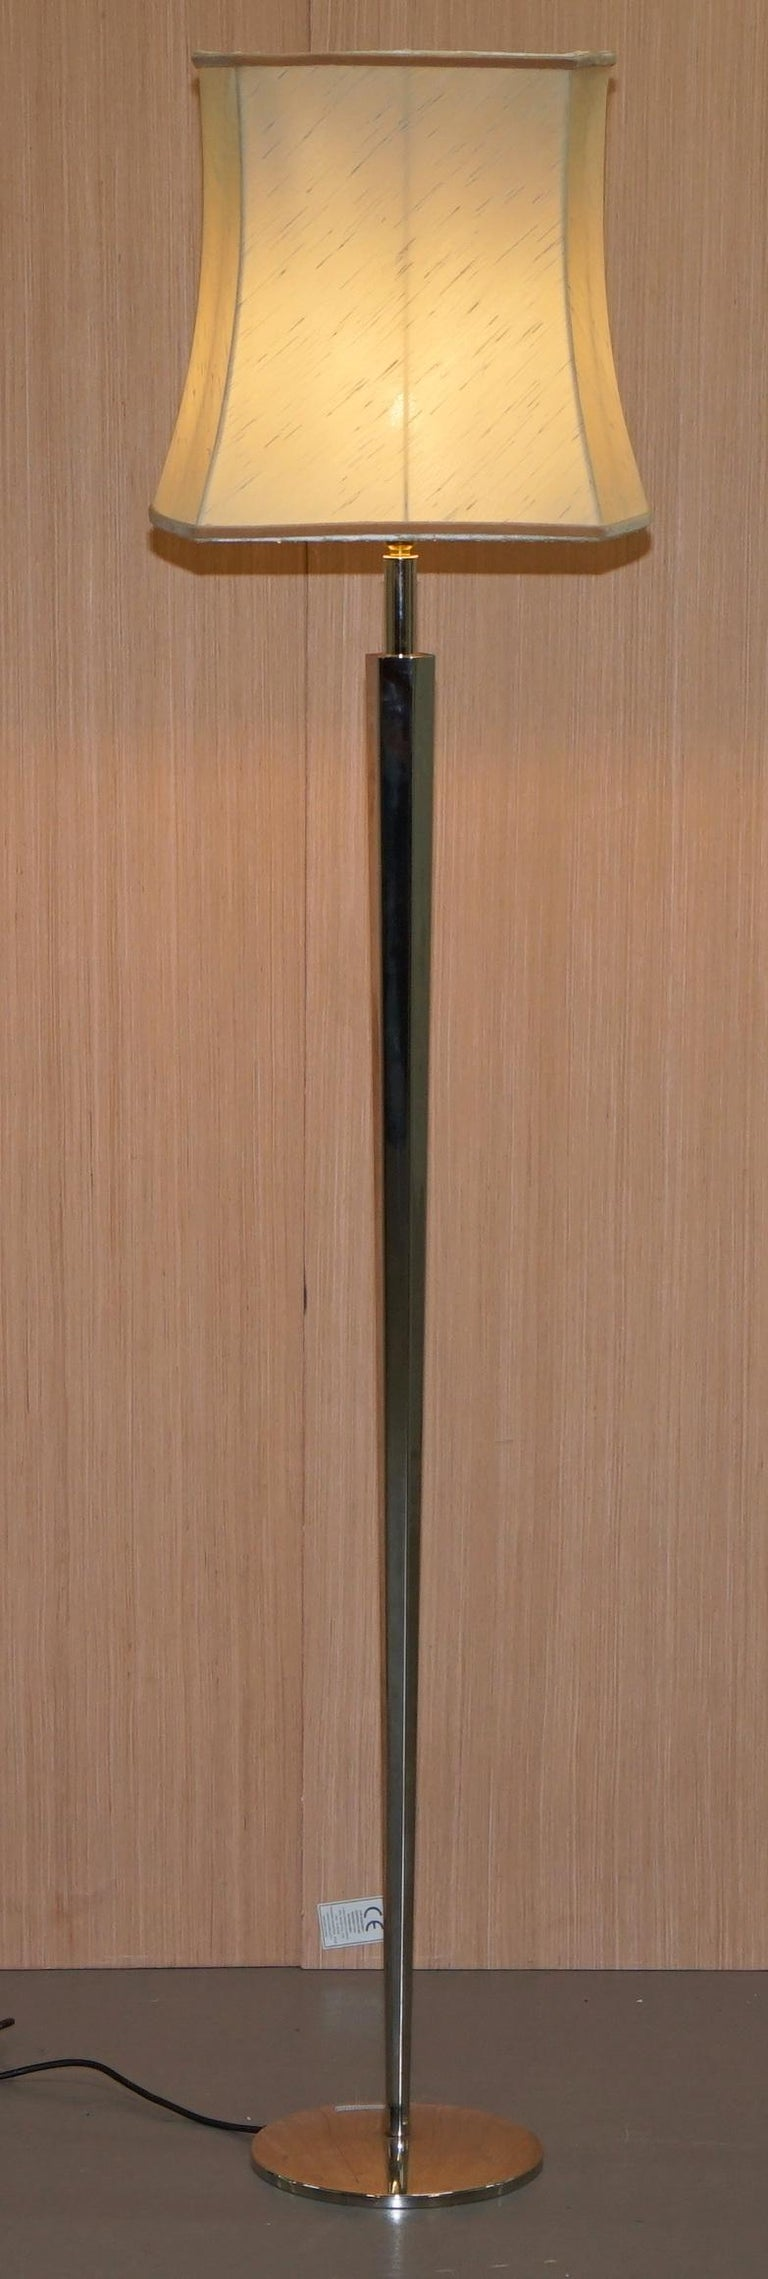 Pair of Pacific Heights Floor Lamps Boyd Lighting Barbara Barry For Sale 4